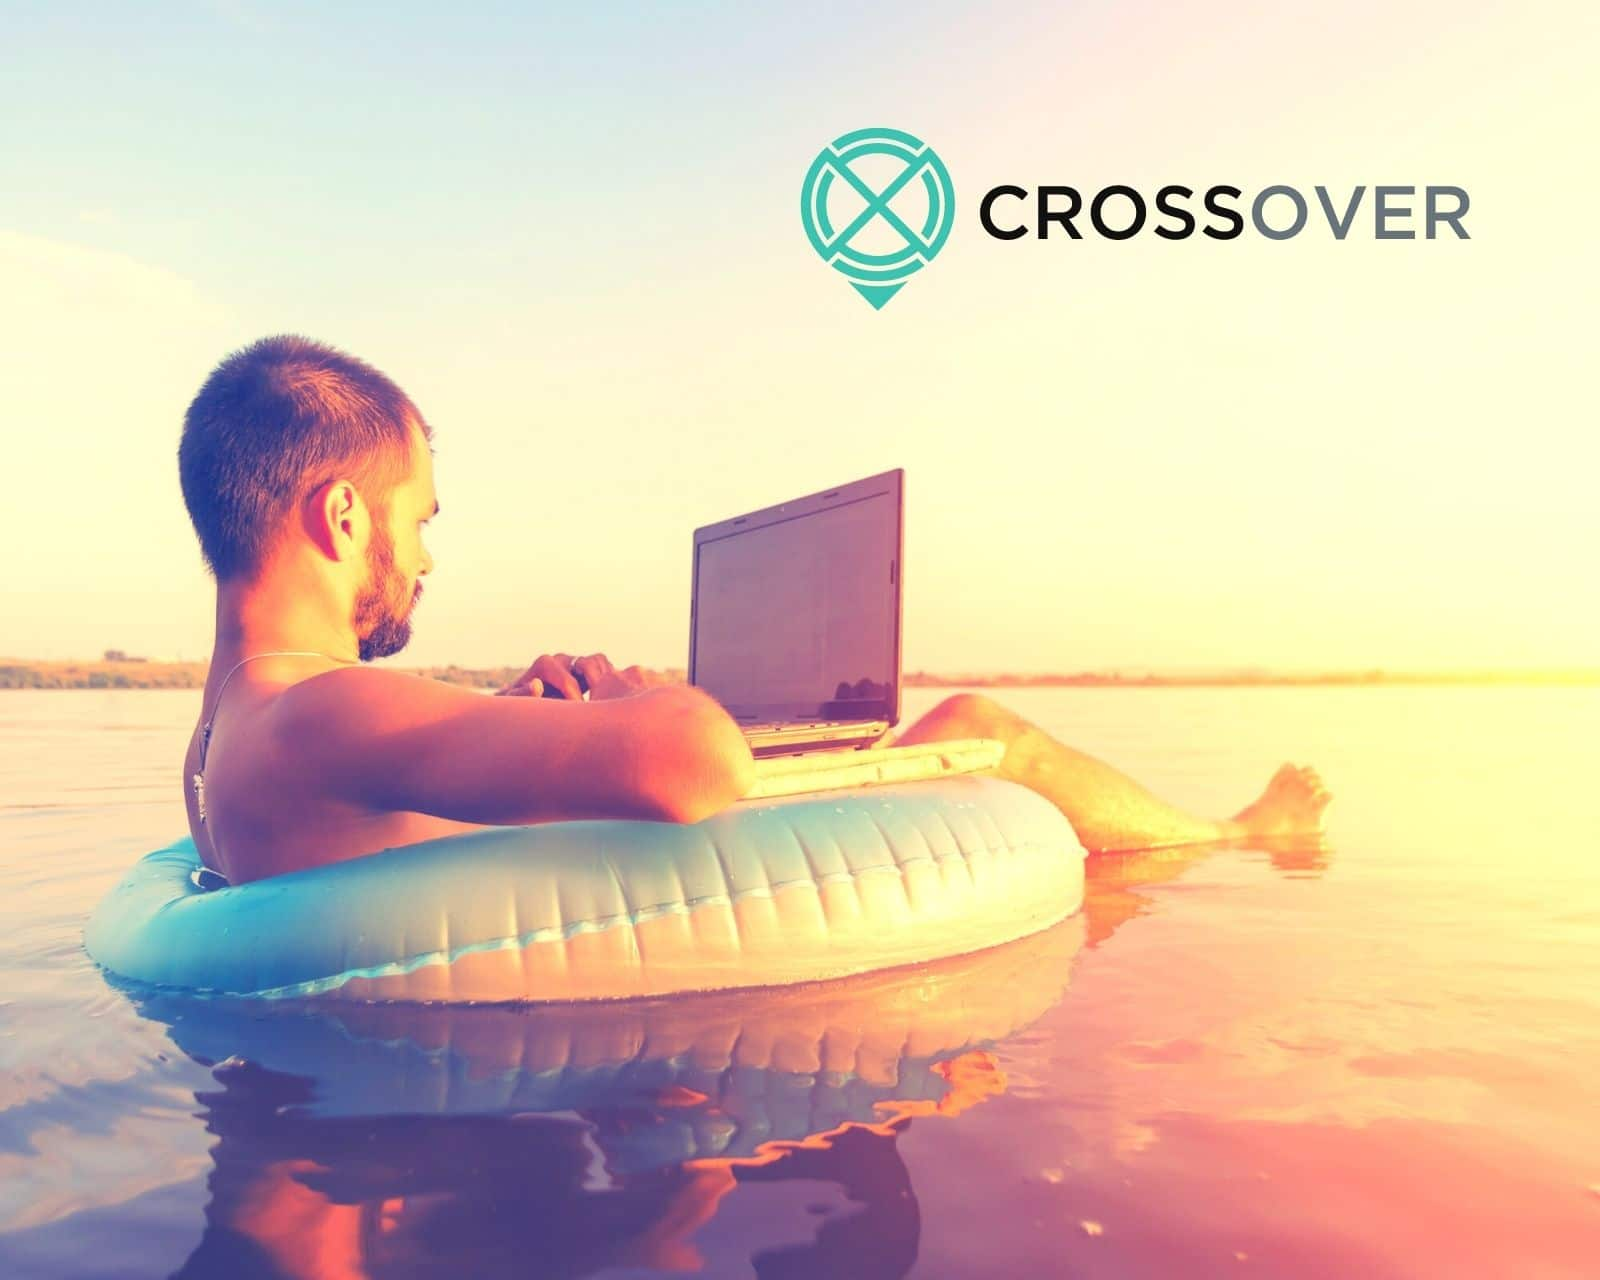 Freelance Copywriter Penning Thought Leadership Articles For Recruitment Company Crossover, Specialists In Remote Working